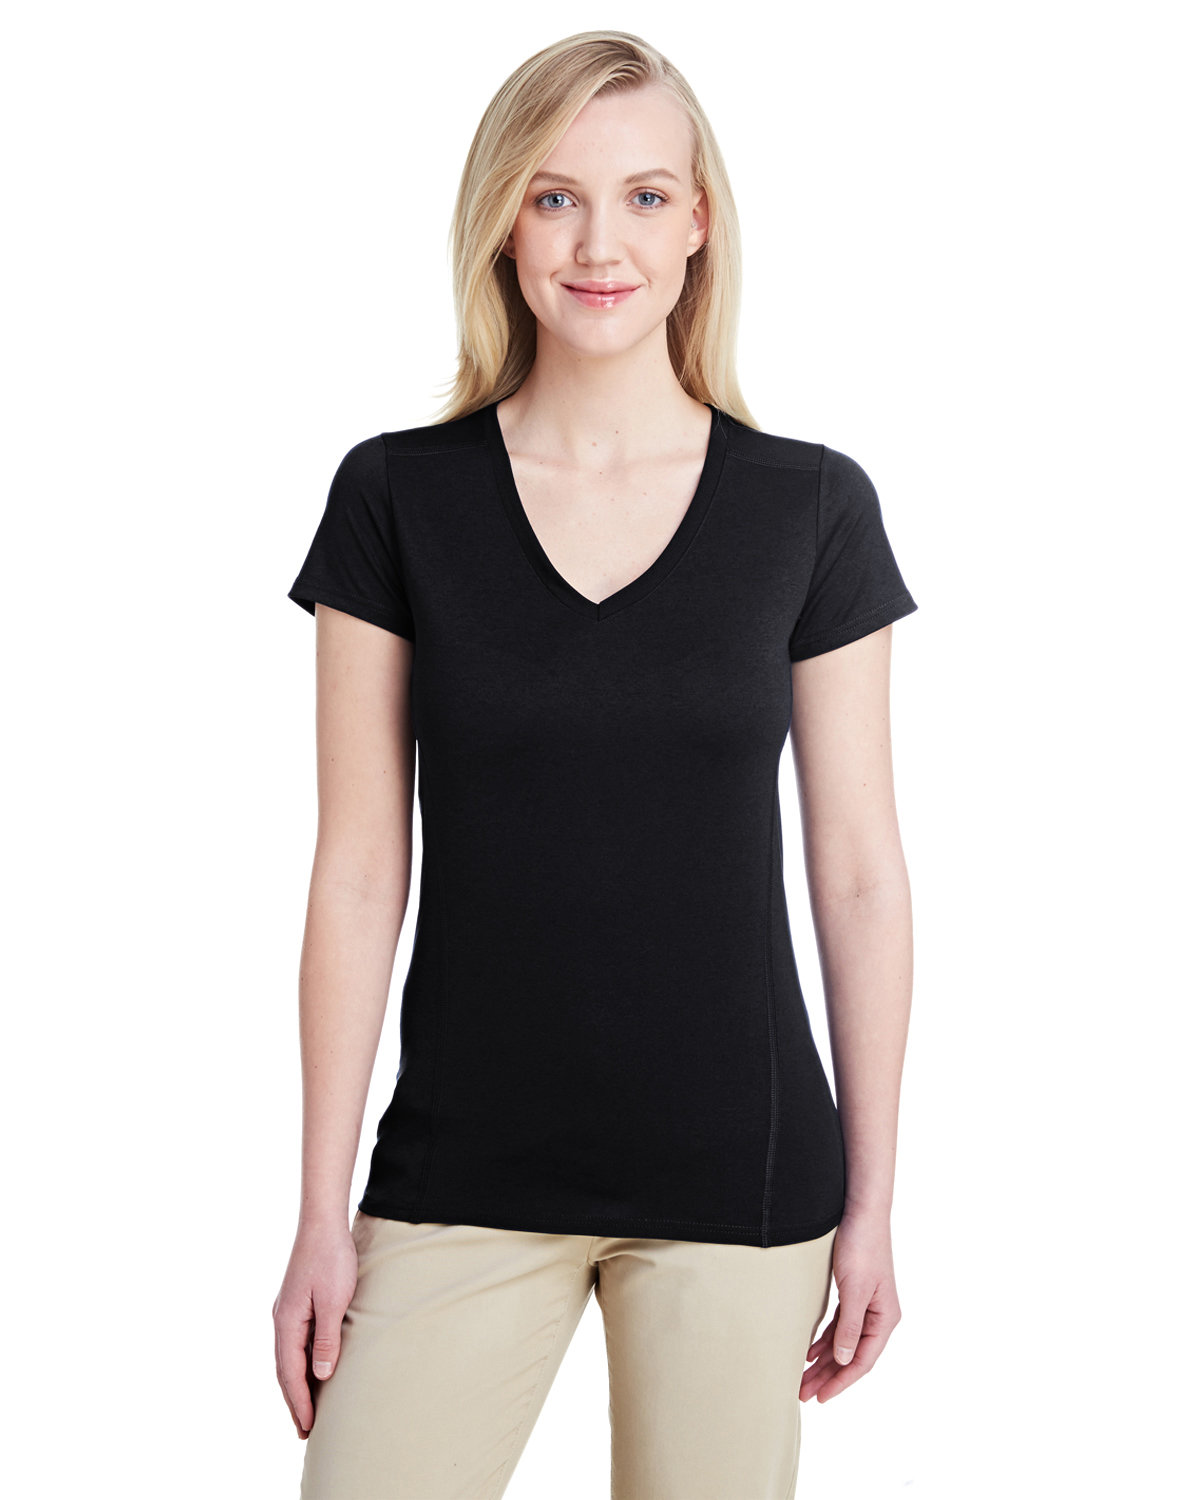 Gildan Ladies' Performance® Ladies' 4.7 oz. V-Neck Tech T-Shirt